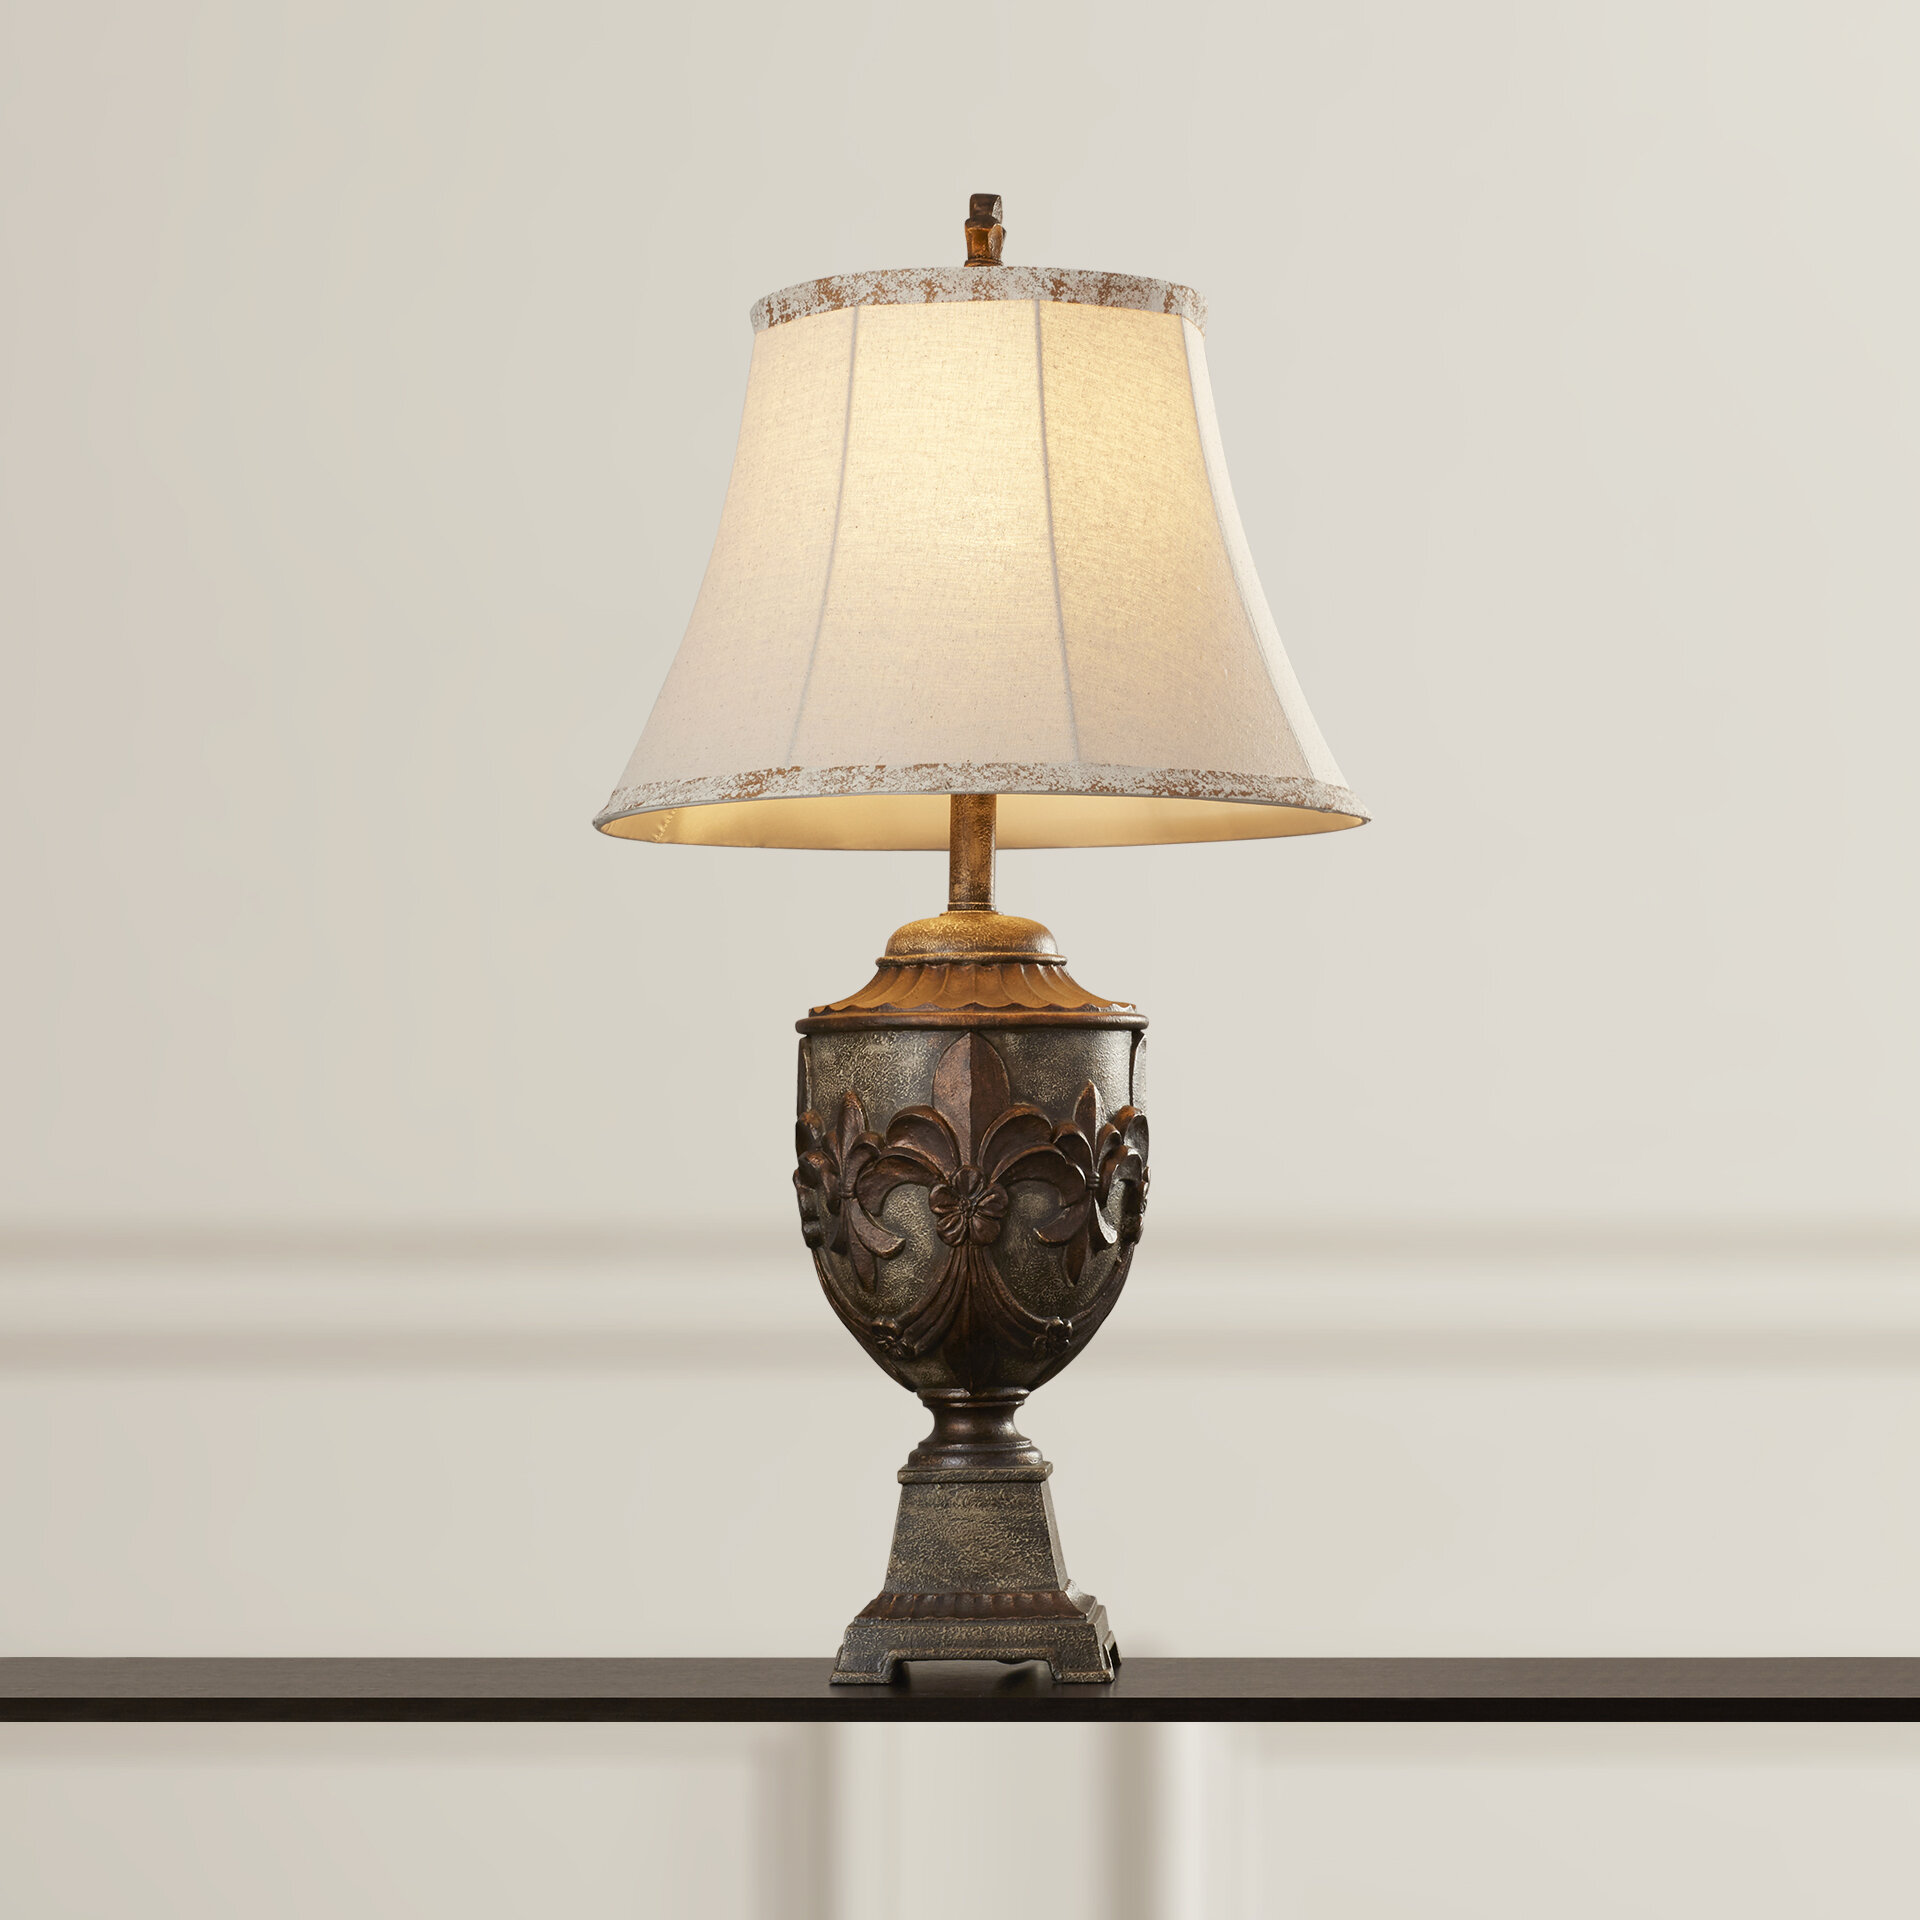 Fleur de lis living lora 32 table lamp reviews wayfair